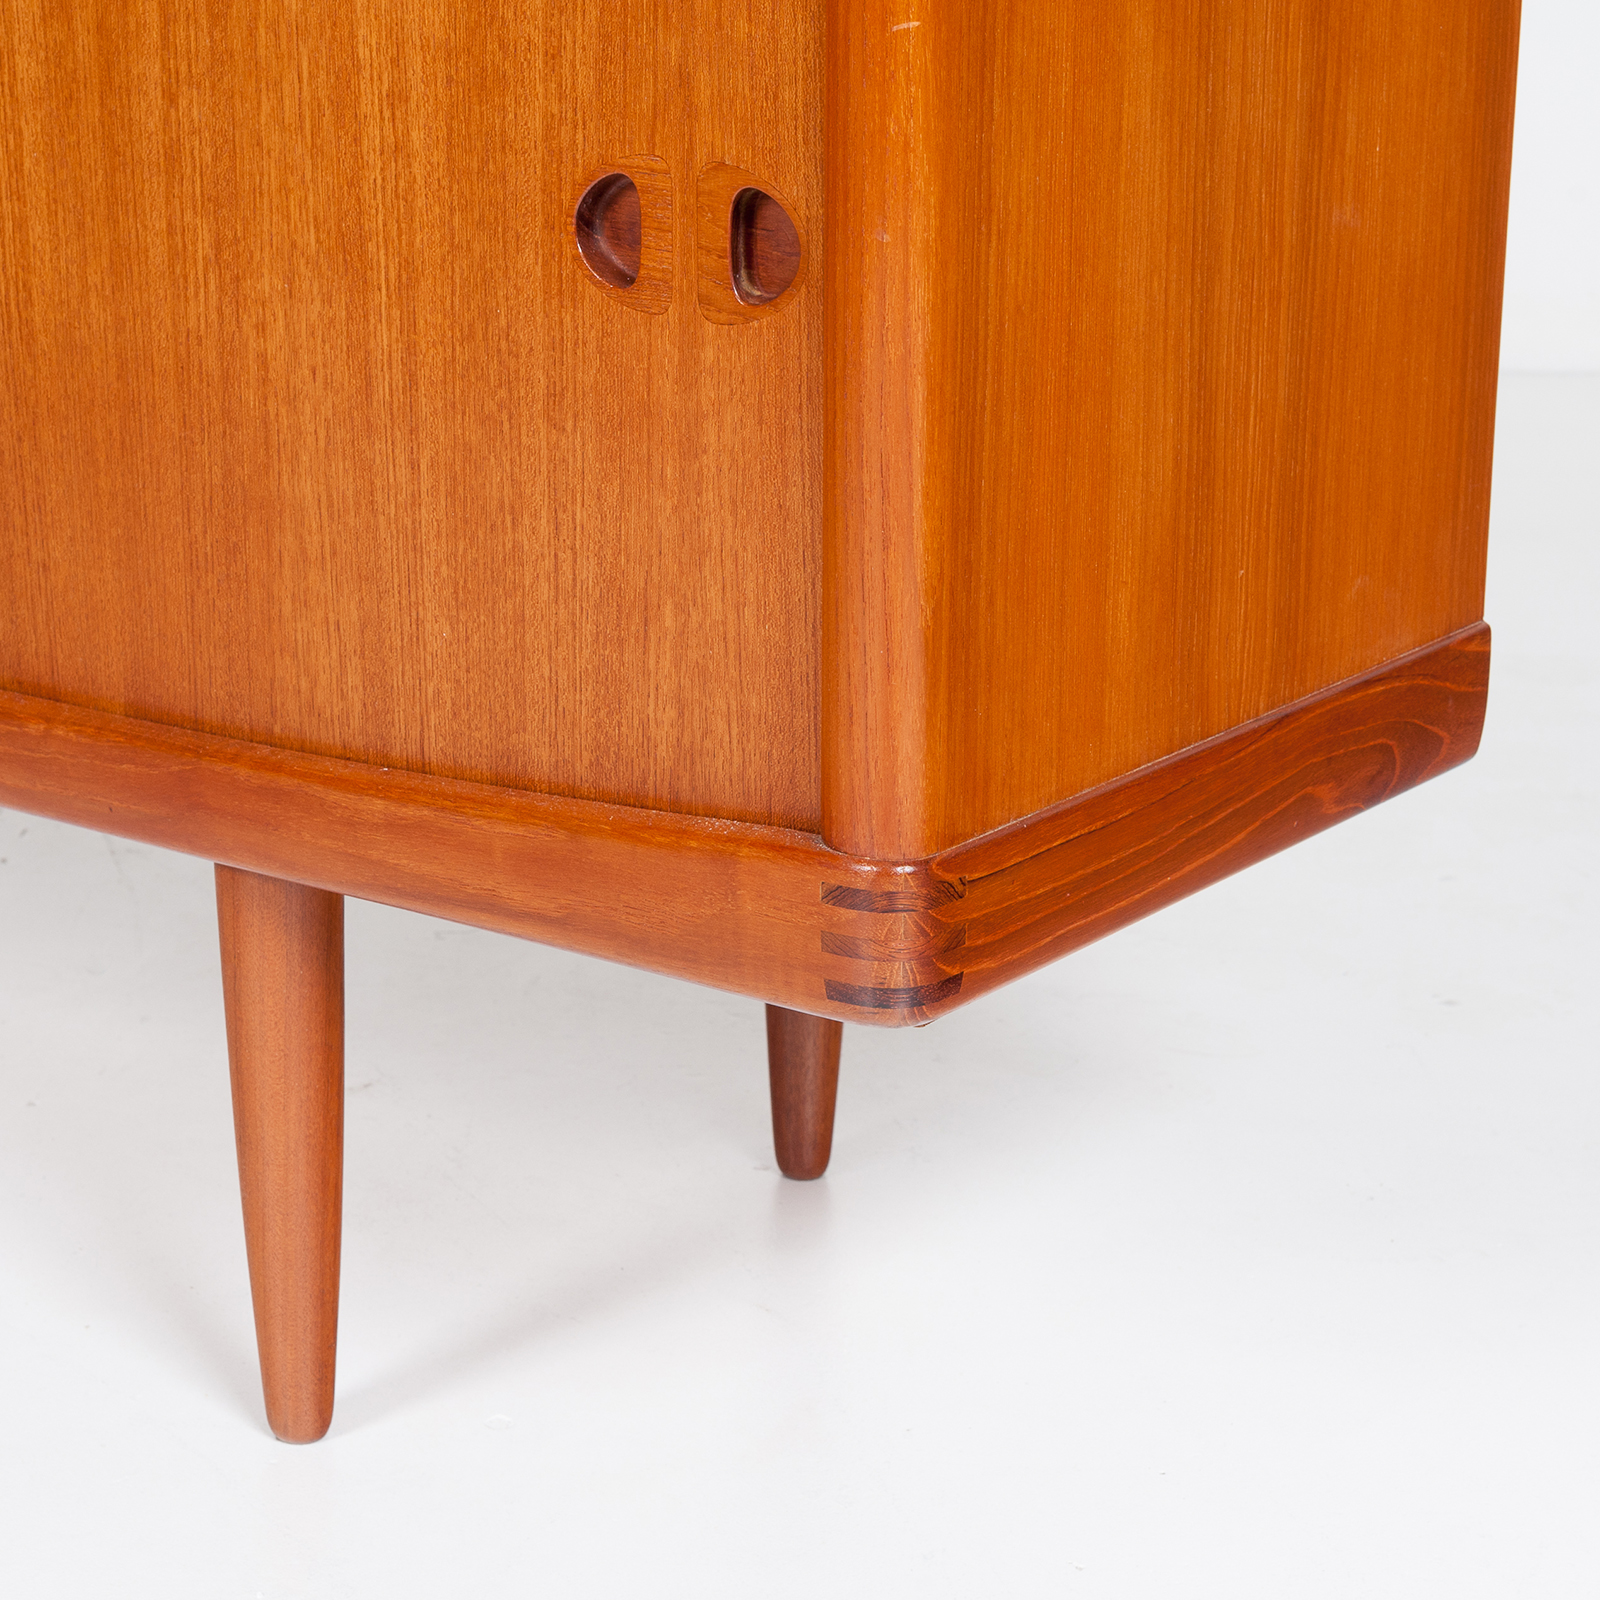 Sideboard By H W Klein In Teak For Bramin, 1960s, Denmark95